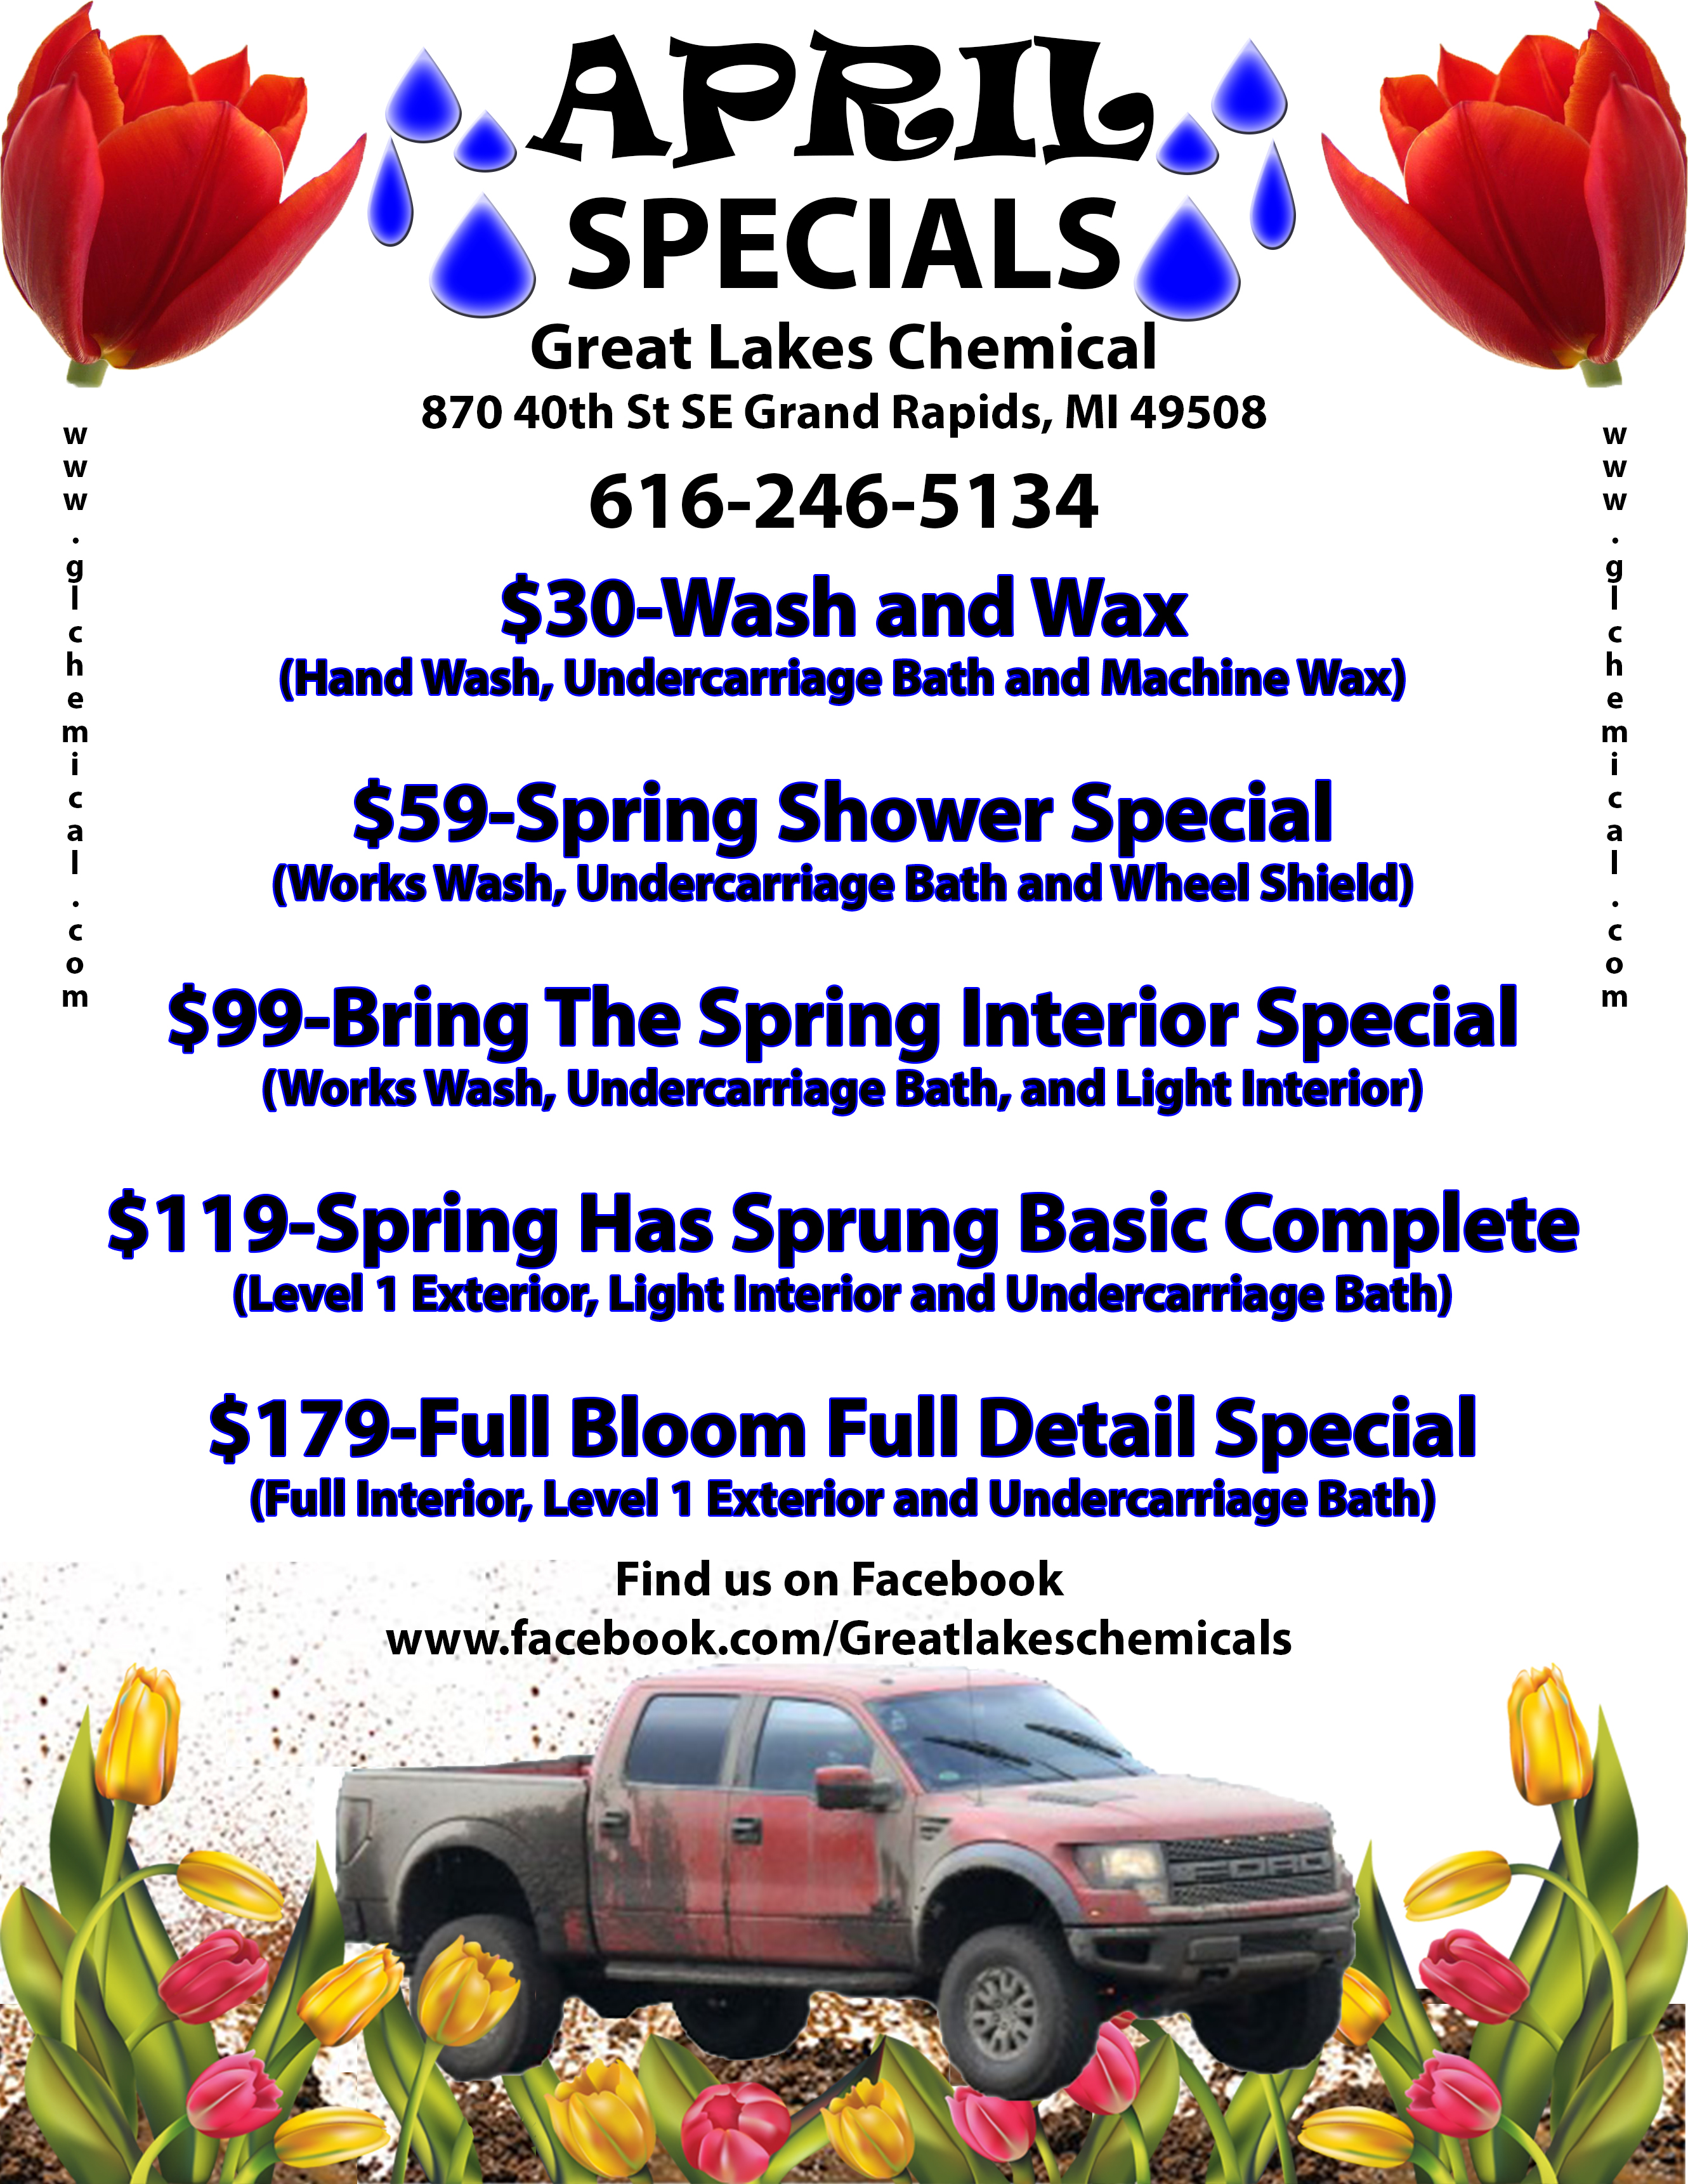 April GR 2014 - Great Lakes Chemical Auto Appearance Specialists